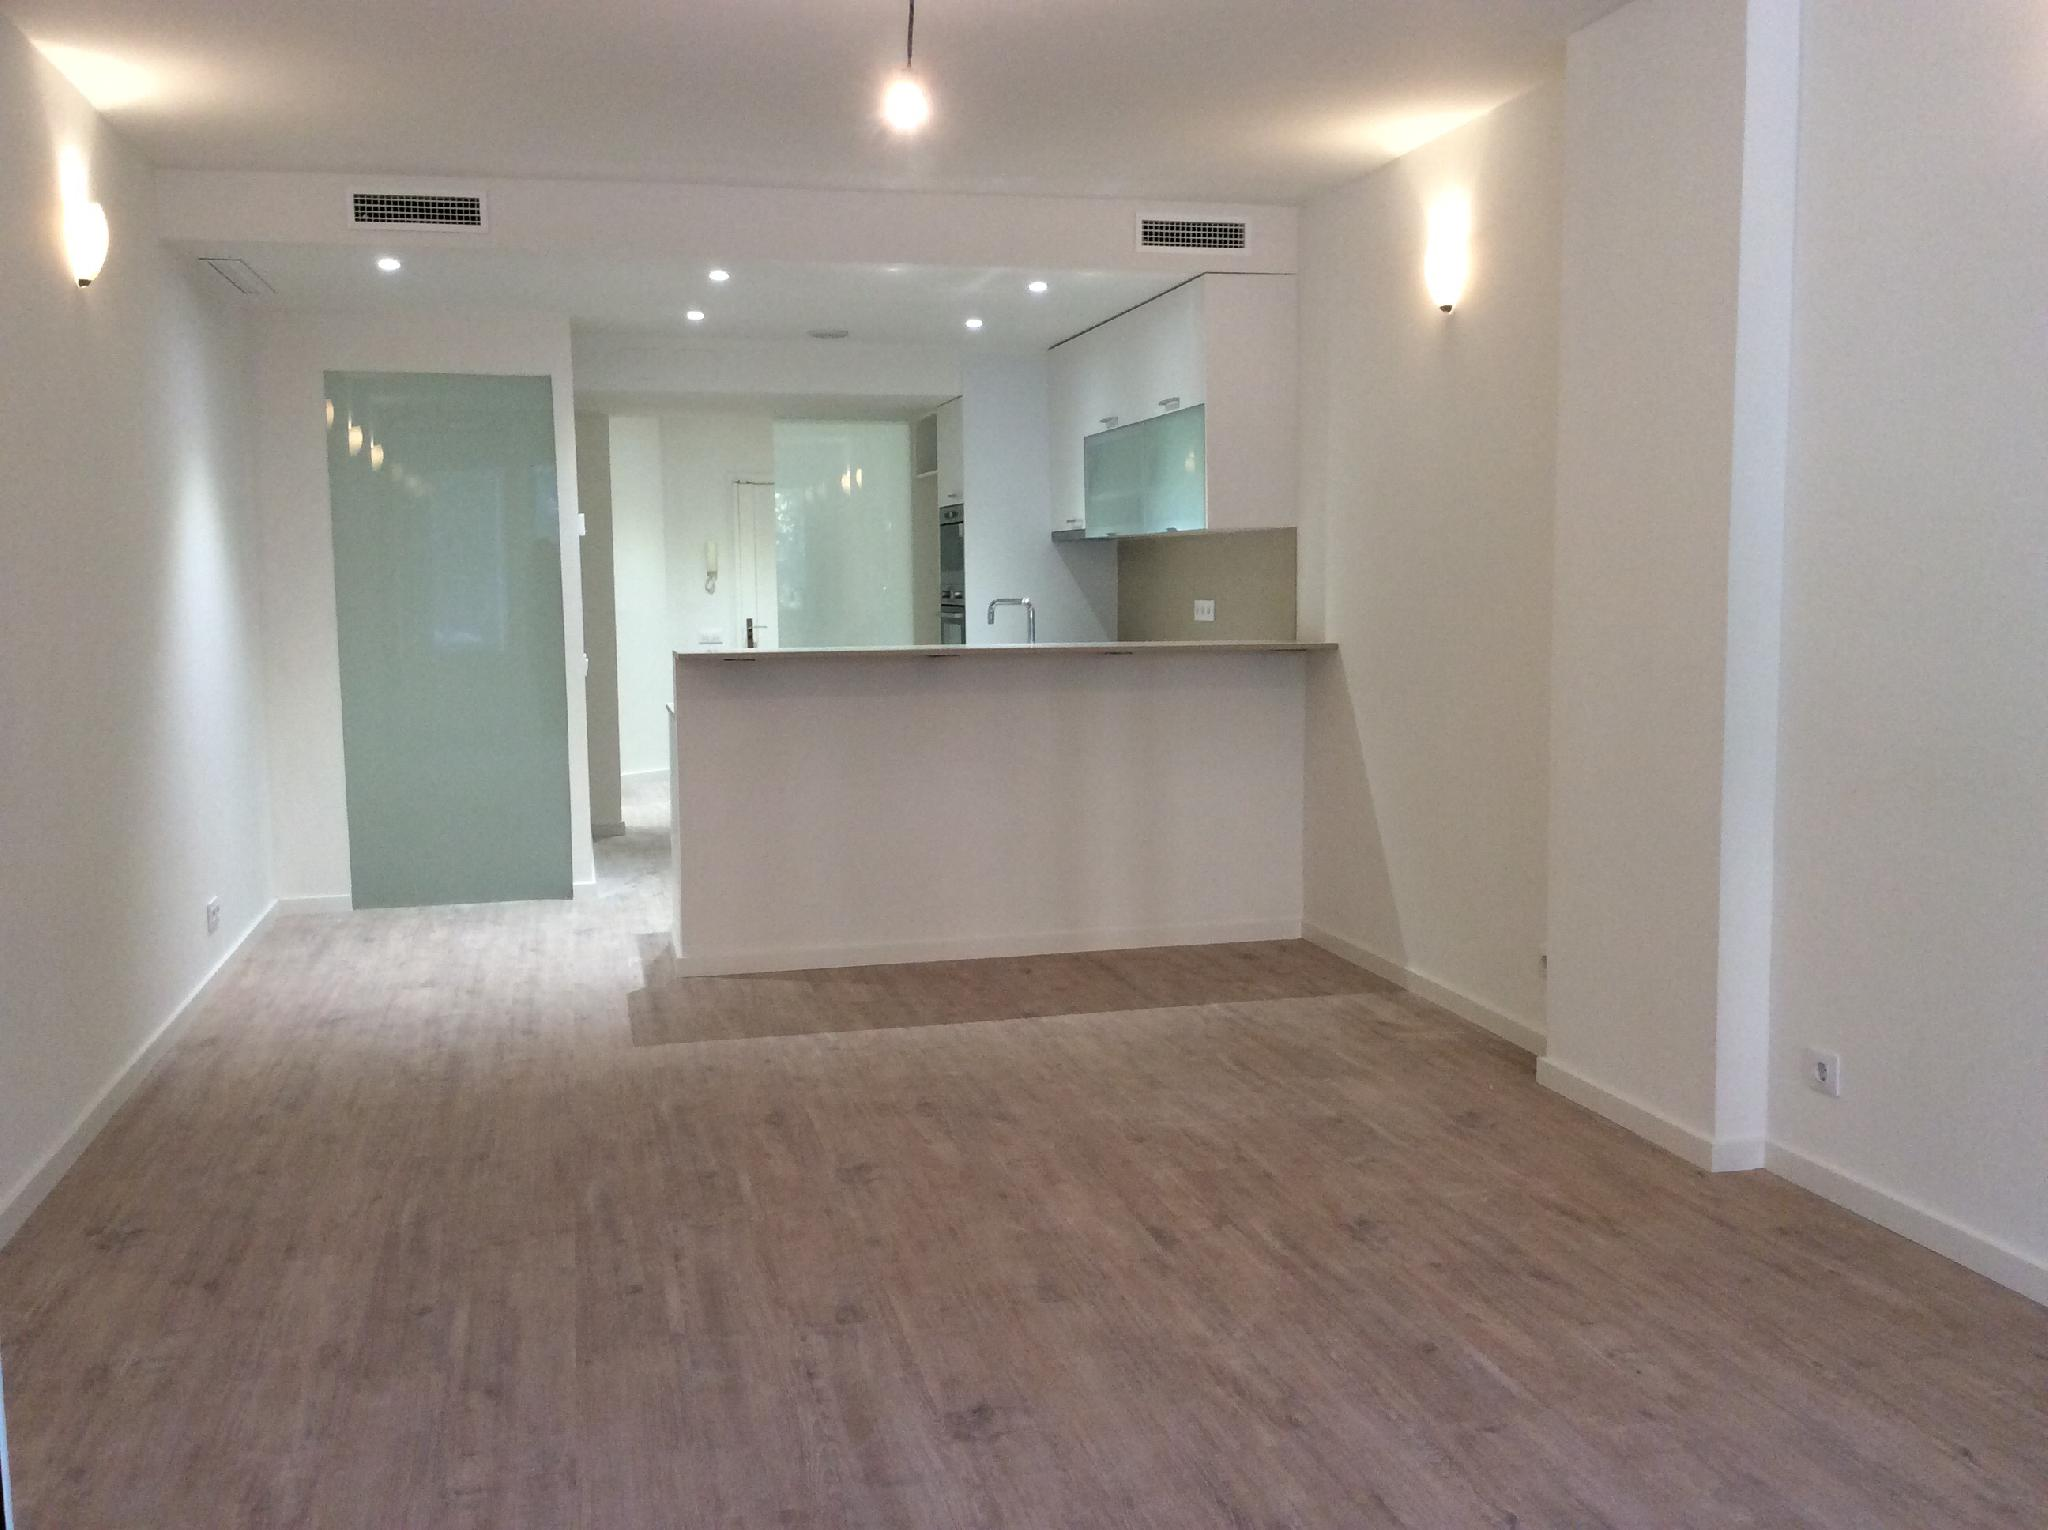 flat-for-sale-in-junto-pca-tetuan-p-sant-joan-fort-pienc-in-barcelona-226829739